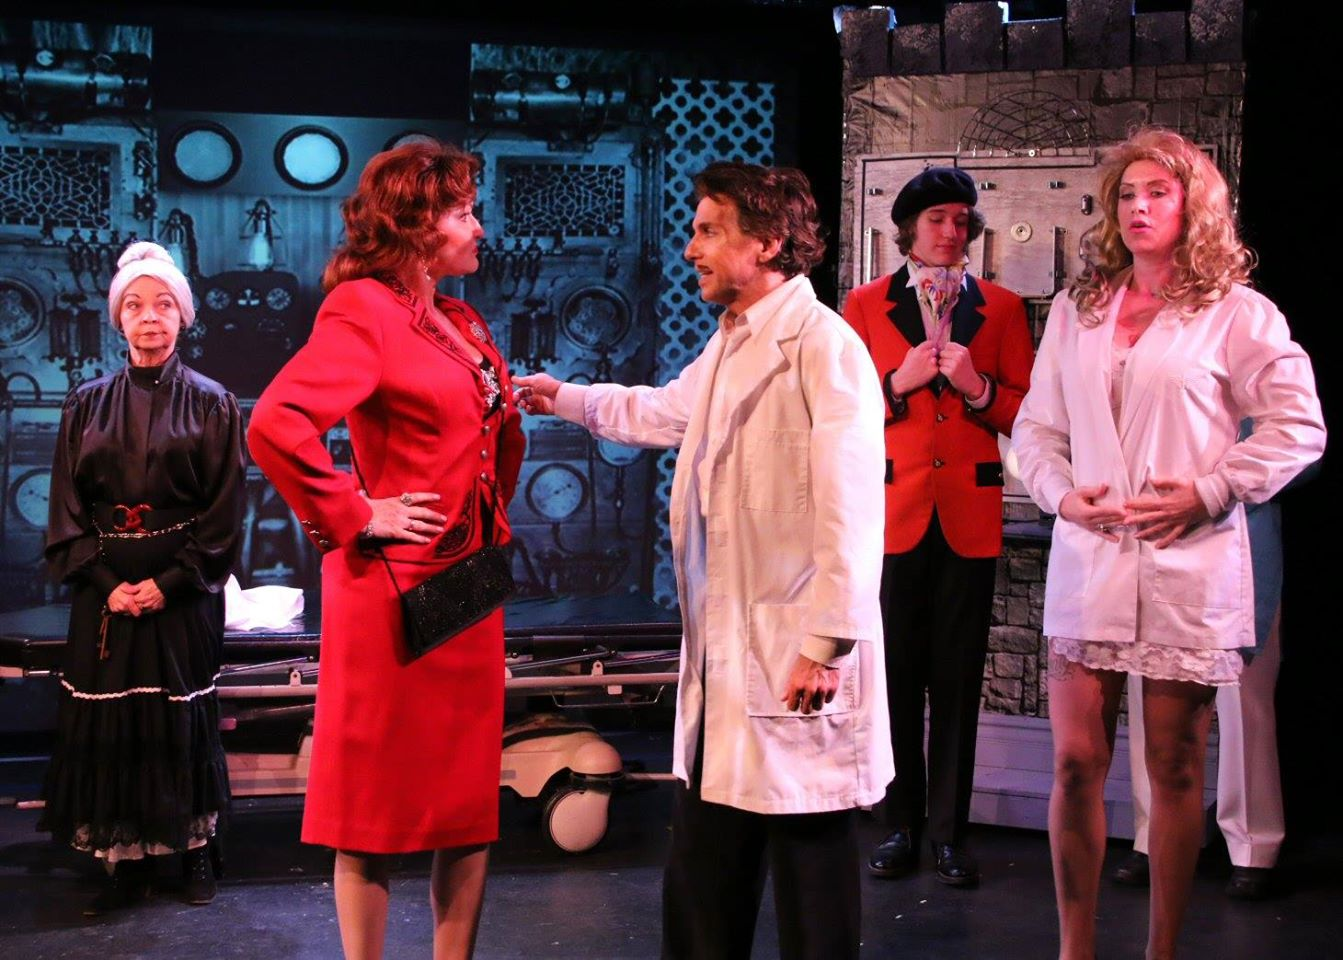 Fountain Hills Theatre. 2015. Young Frankenstein. Noel Irick, Janine Smith, Patrick Russo, unidentified actor, Morgan Ottersbach. (Photograph courtesy of Morgan's FB album.)